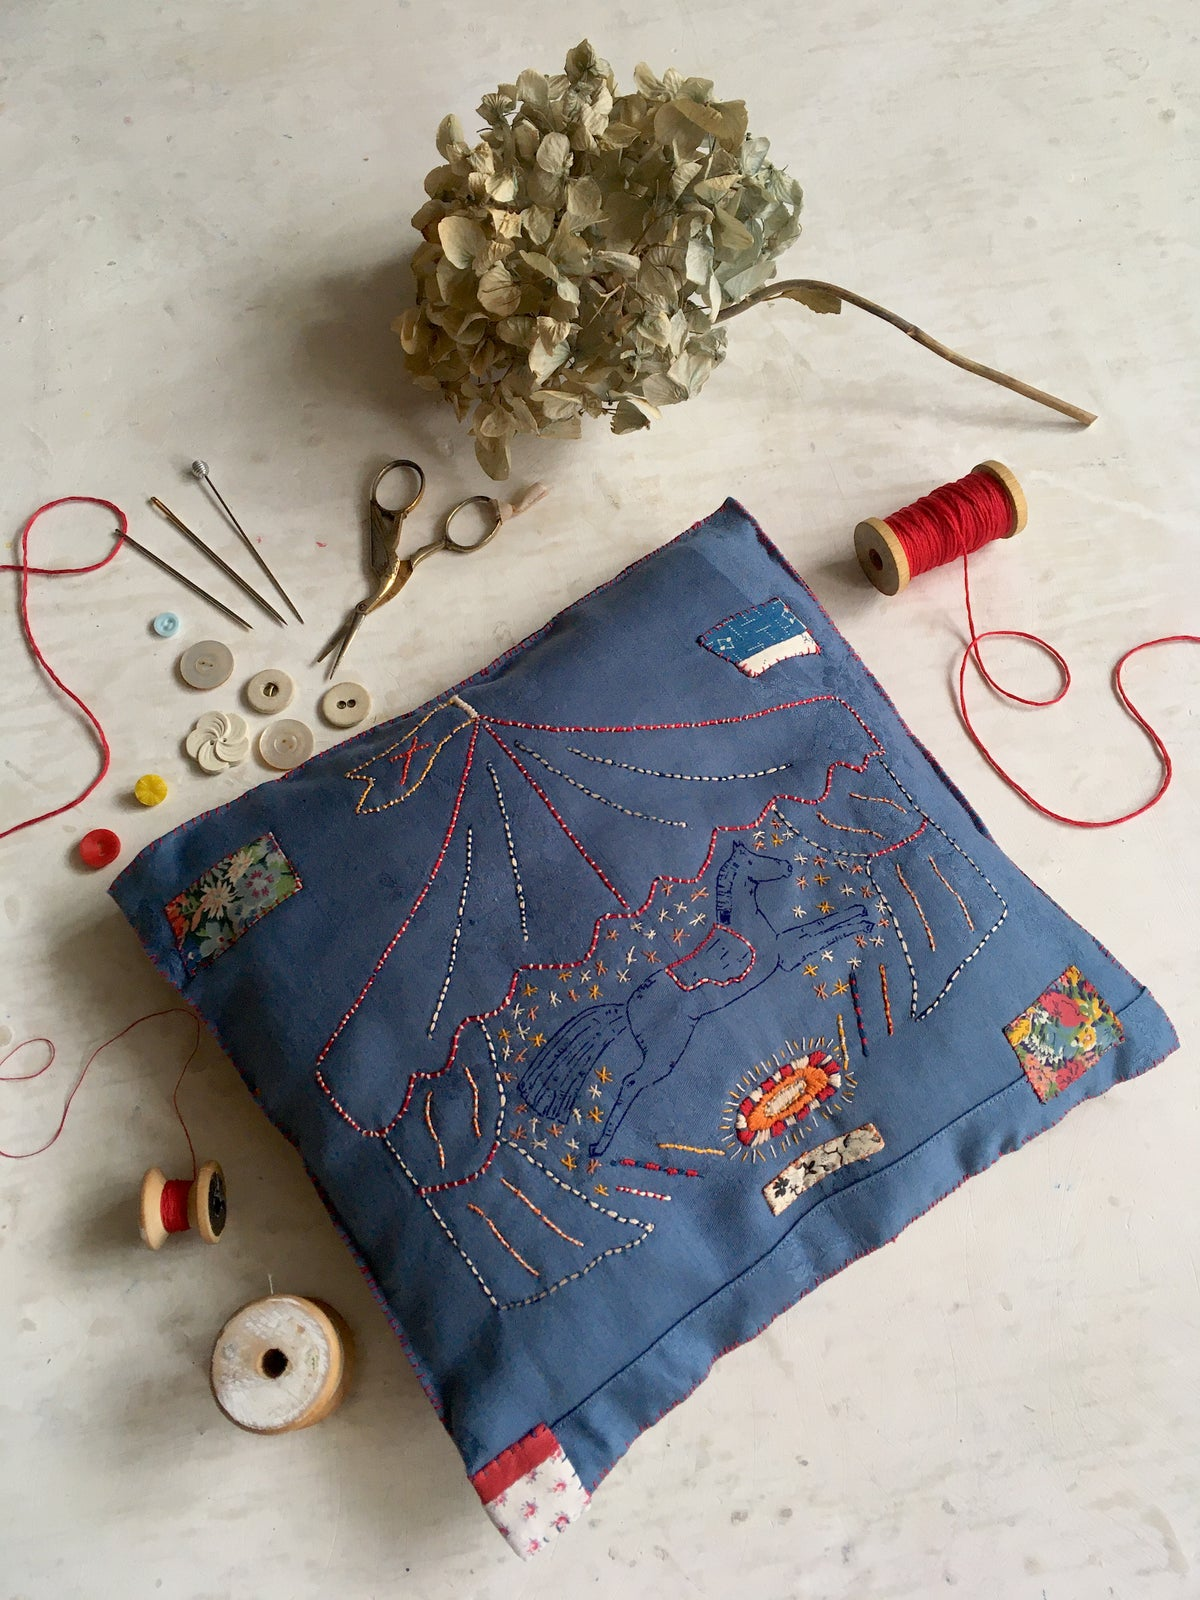 Image of 'Le Cirque' embroidery template on hand dyed blue fabric